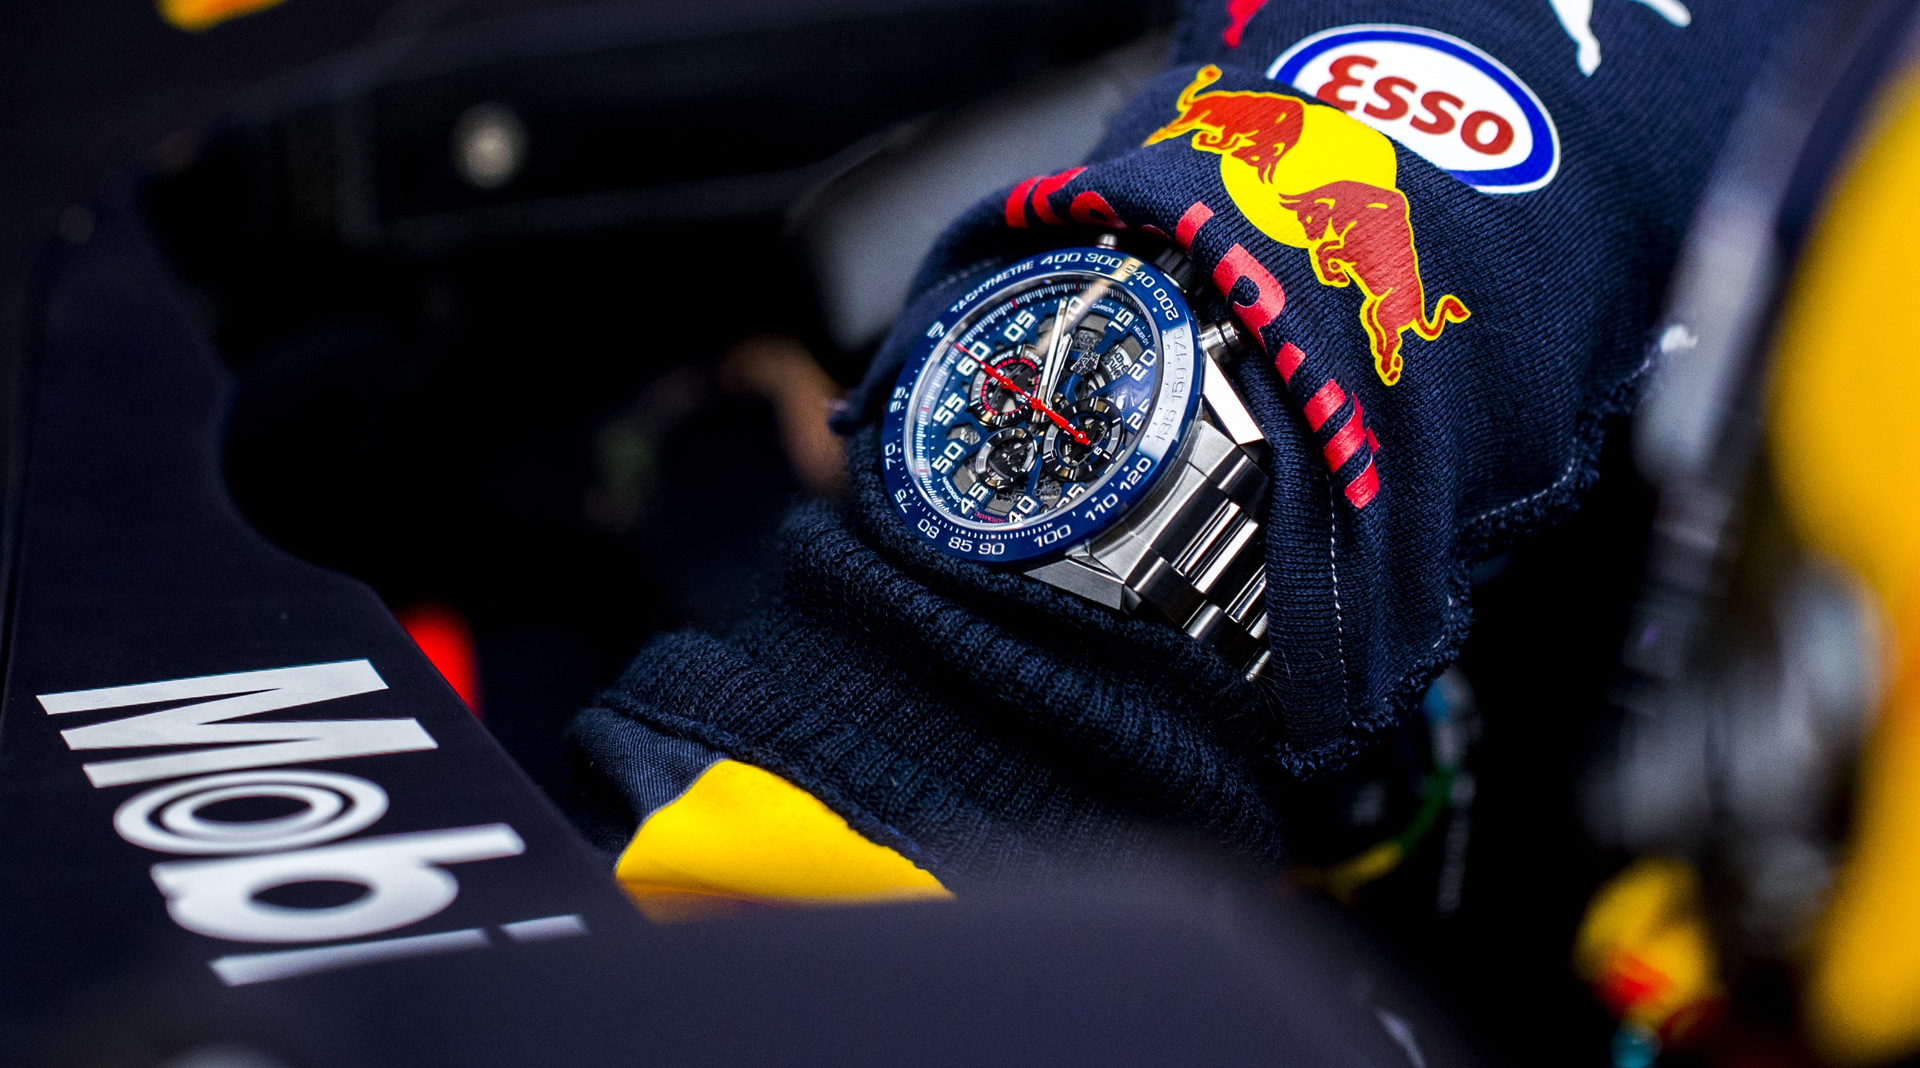 TAG Heuer Carrera Heuer 01 Red Bull Racing Formula One